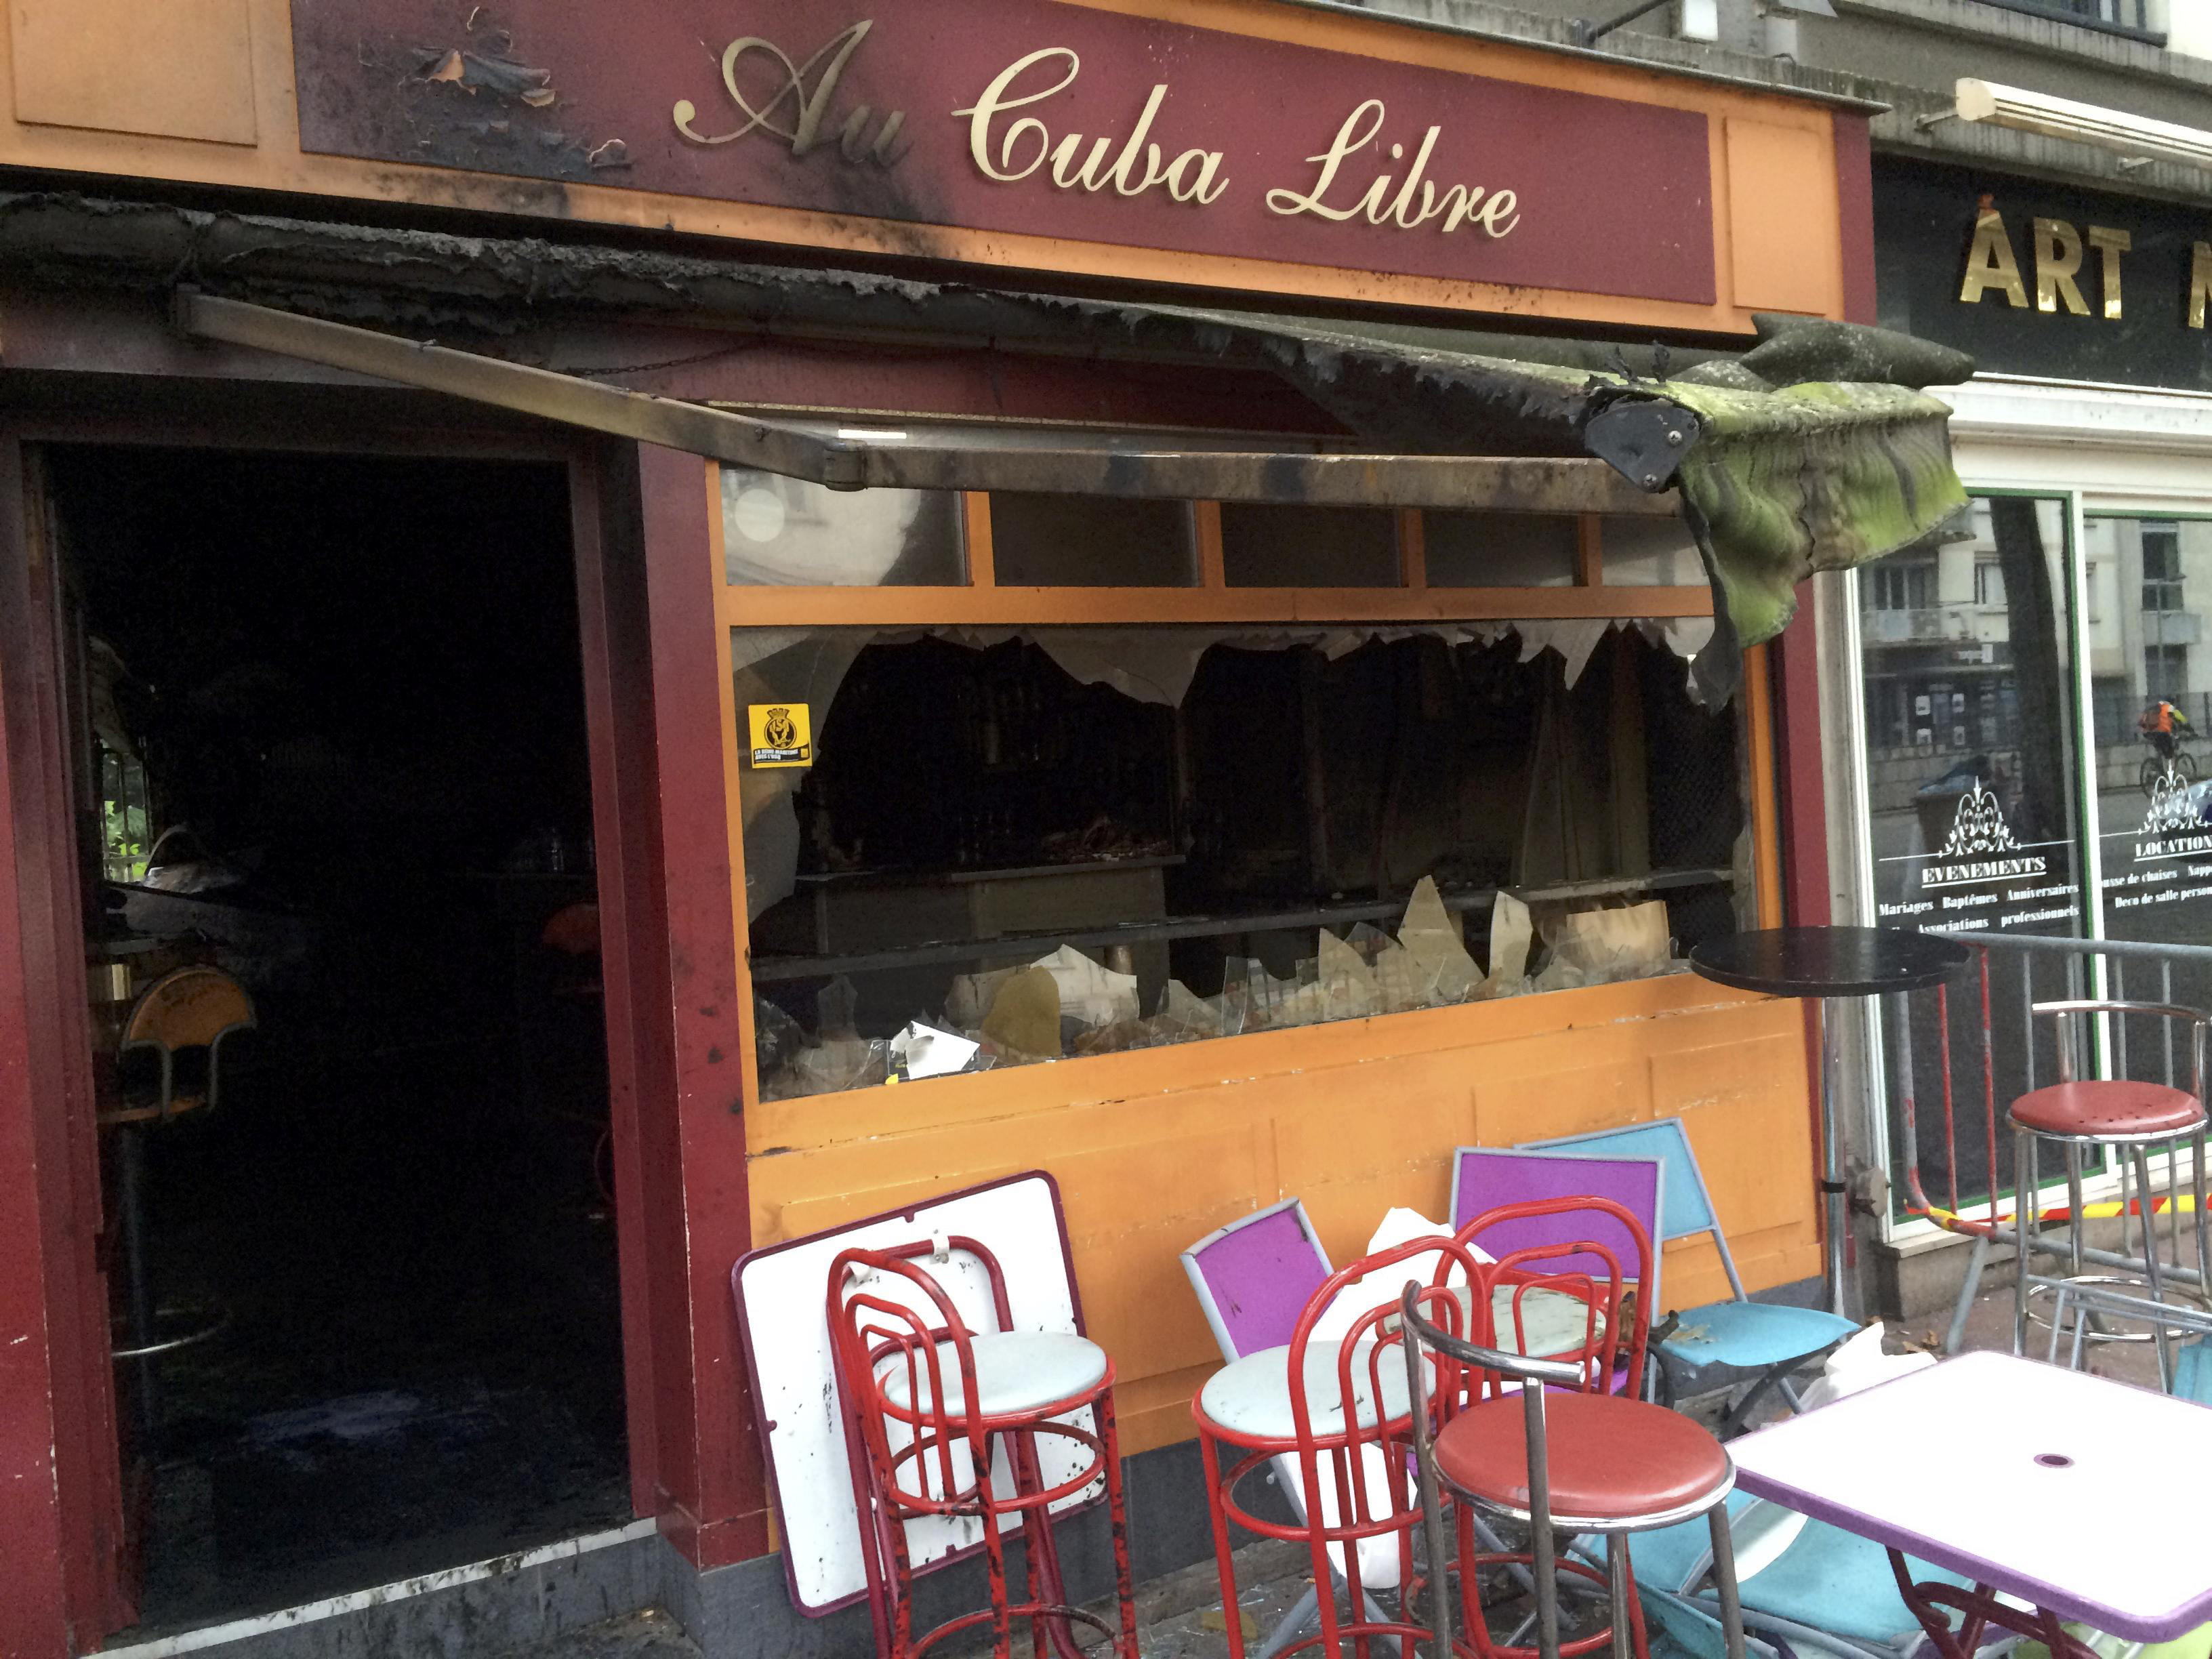 deadly fire sweeps through birthday party at basement bar in rouen france cbs news. Black Bedroom Furniture Sets. Home Design Ideas